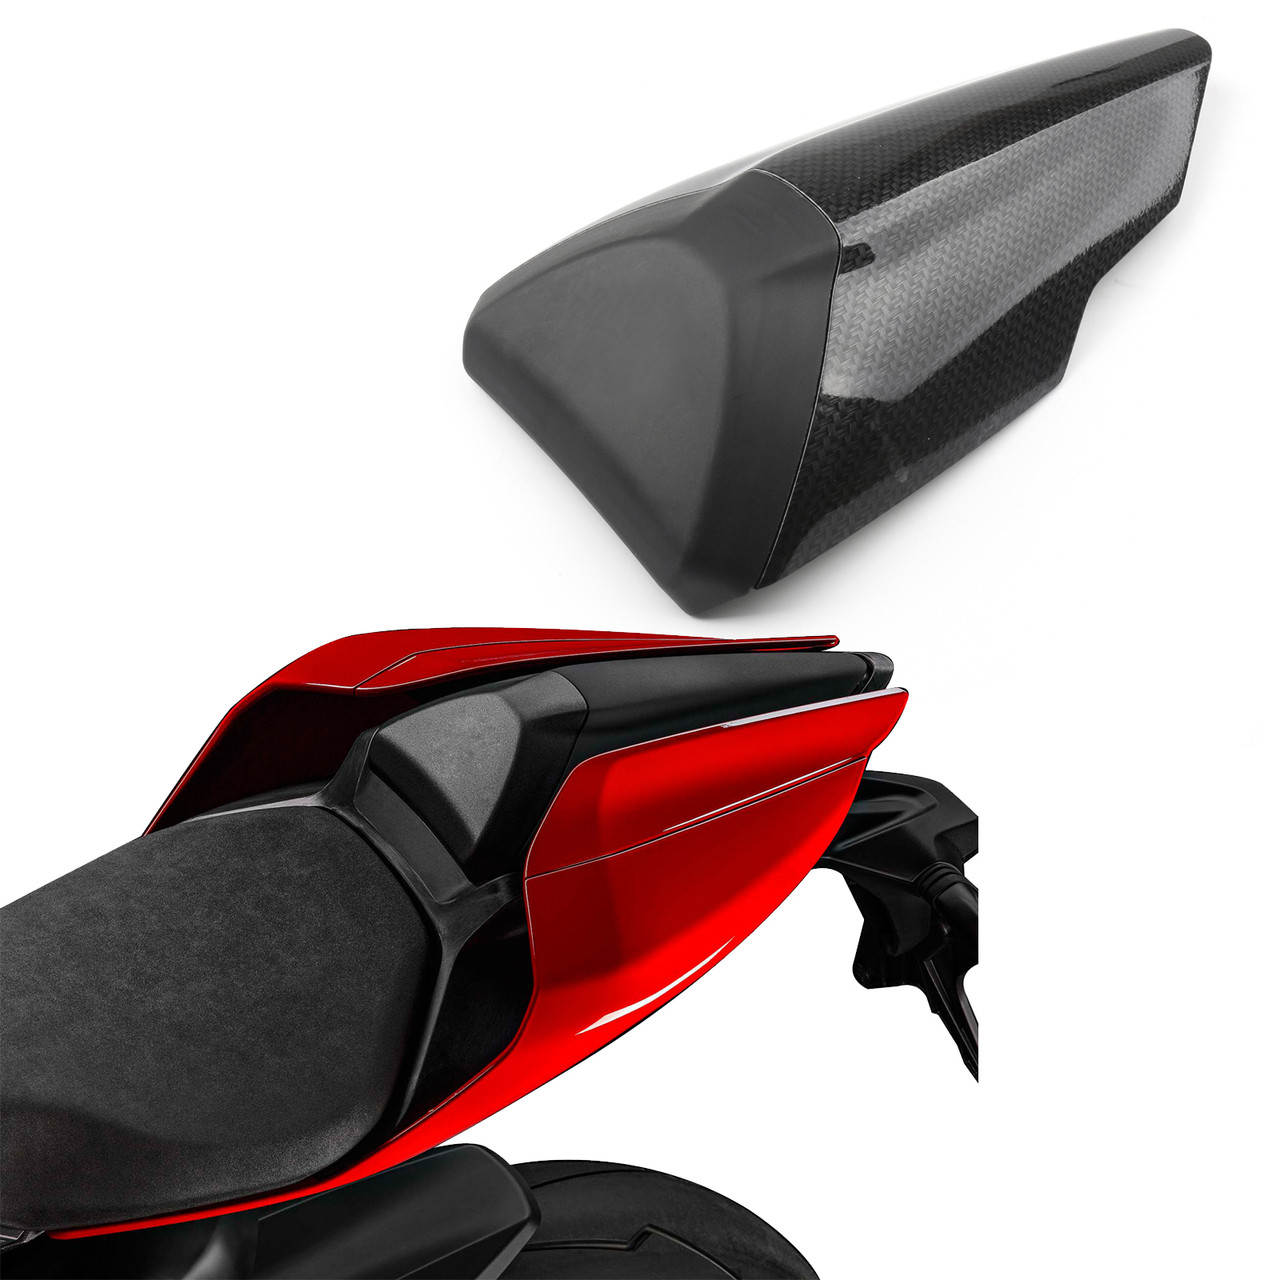 Rear Tail Solo Seat Cover Cowl Fairing for Ducati 1299 Panigale (2015-2018) Carbon